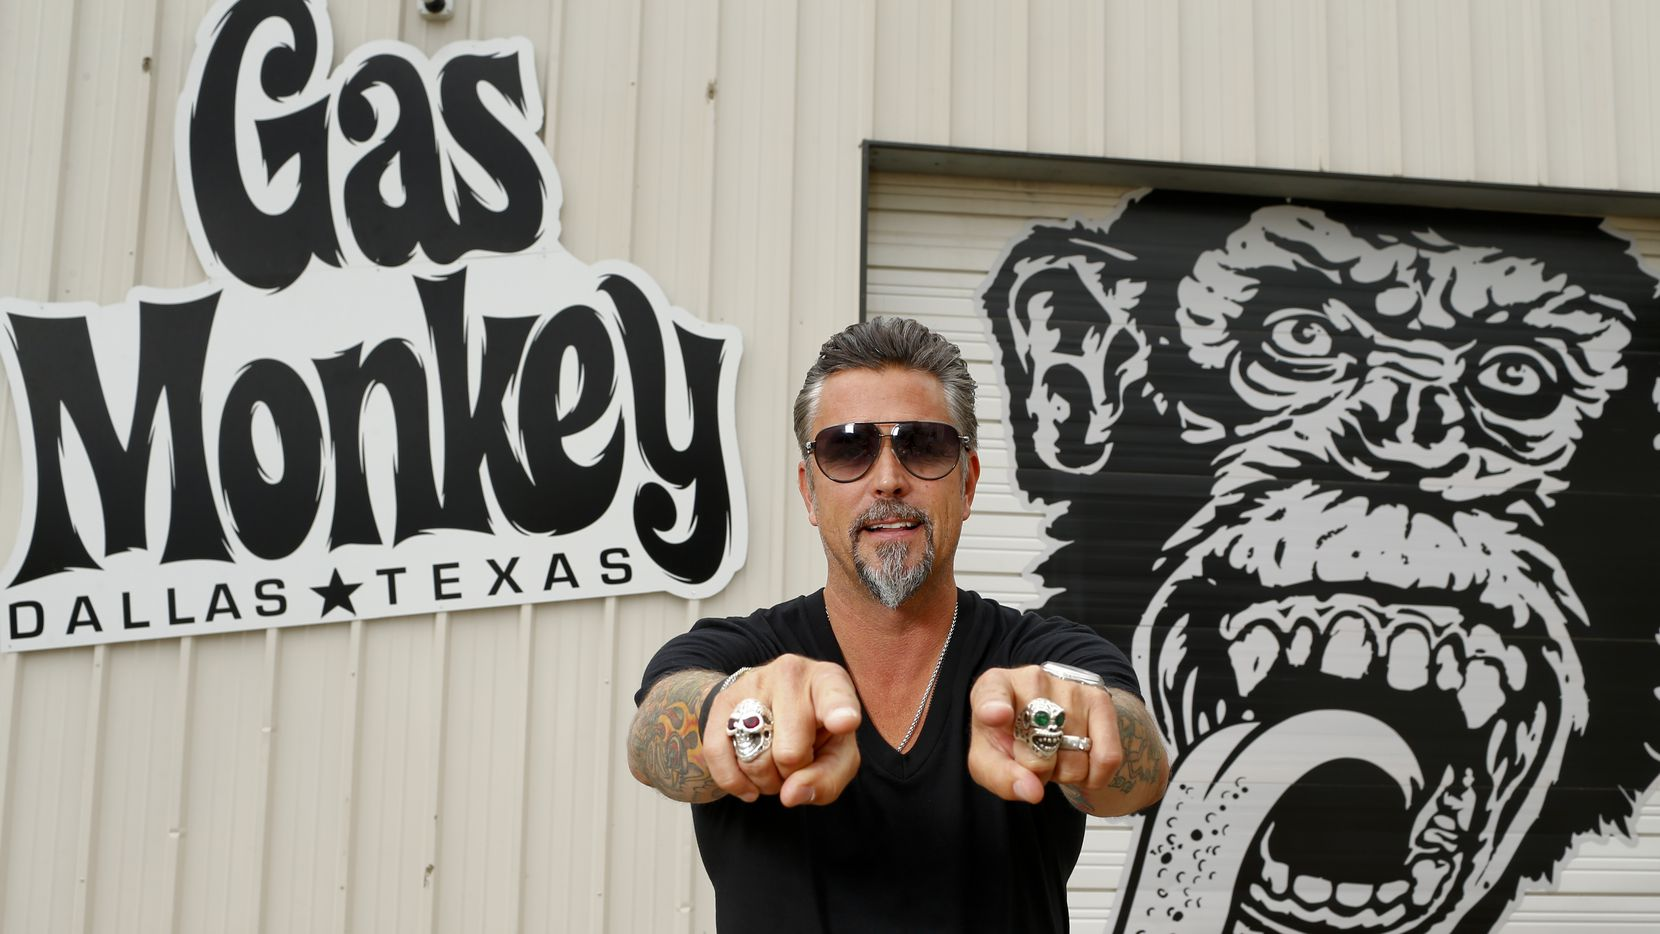 Richard Rawlings, the star of cable TV show Fast 'n Loud, is launching a new Gas Monkey concept in Dallas.